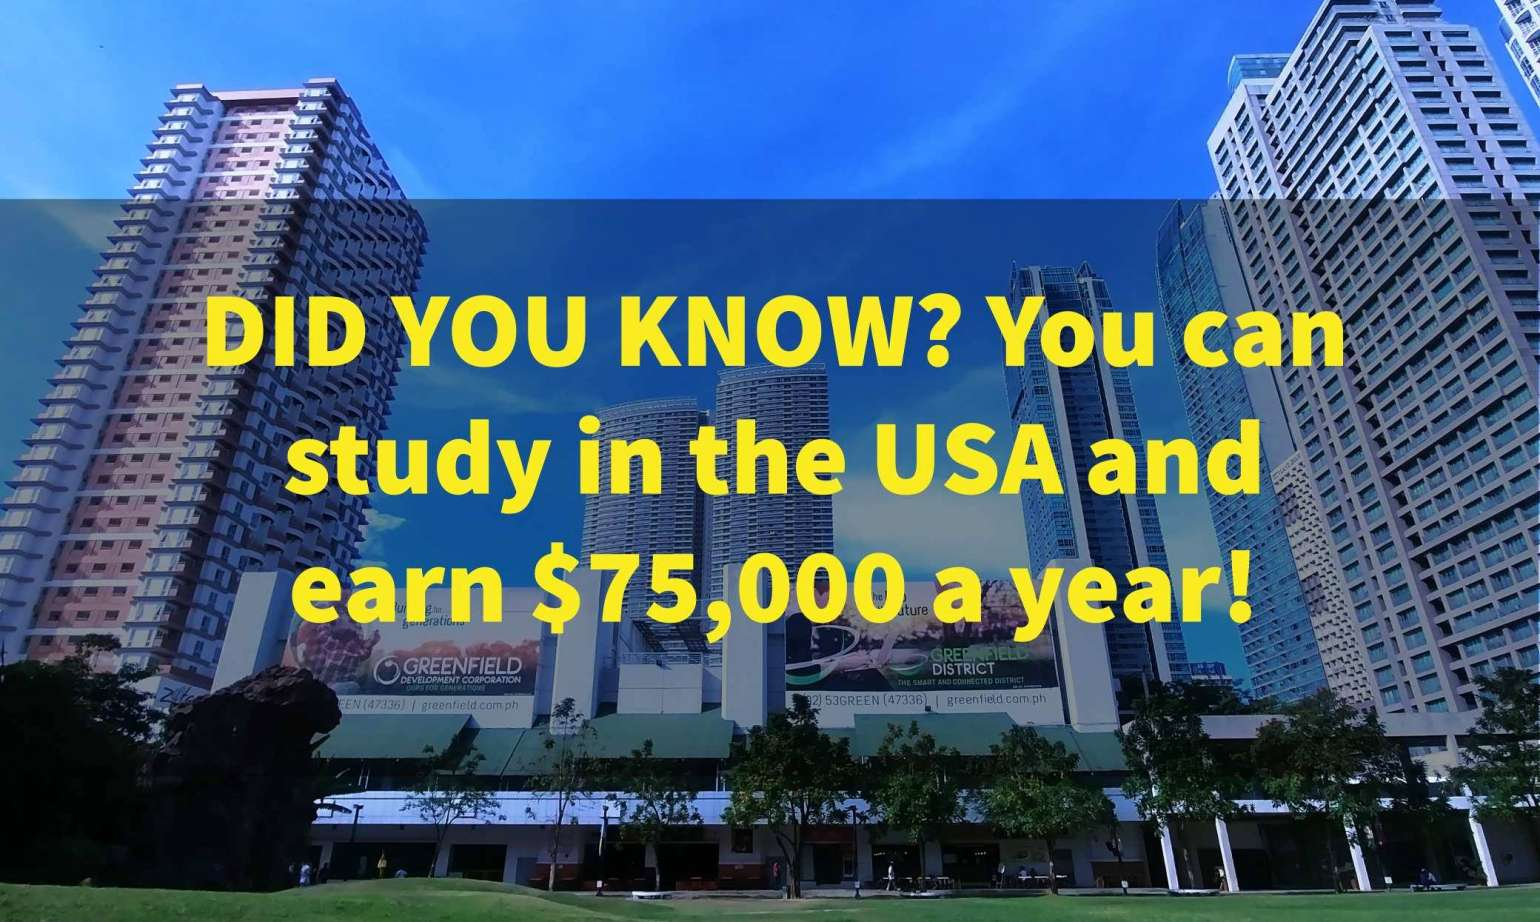 How much do international students earn in the USA?